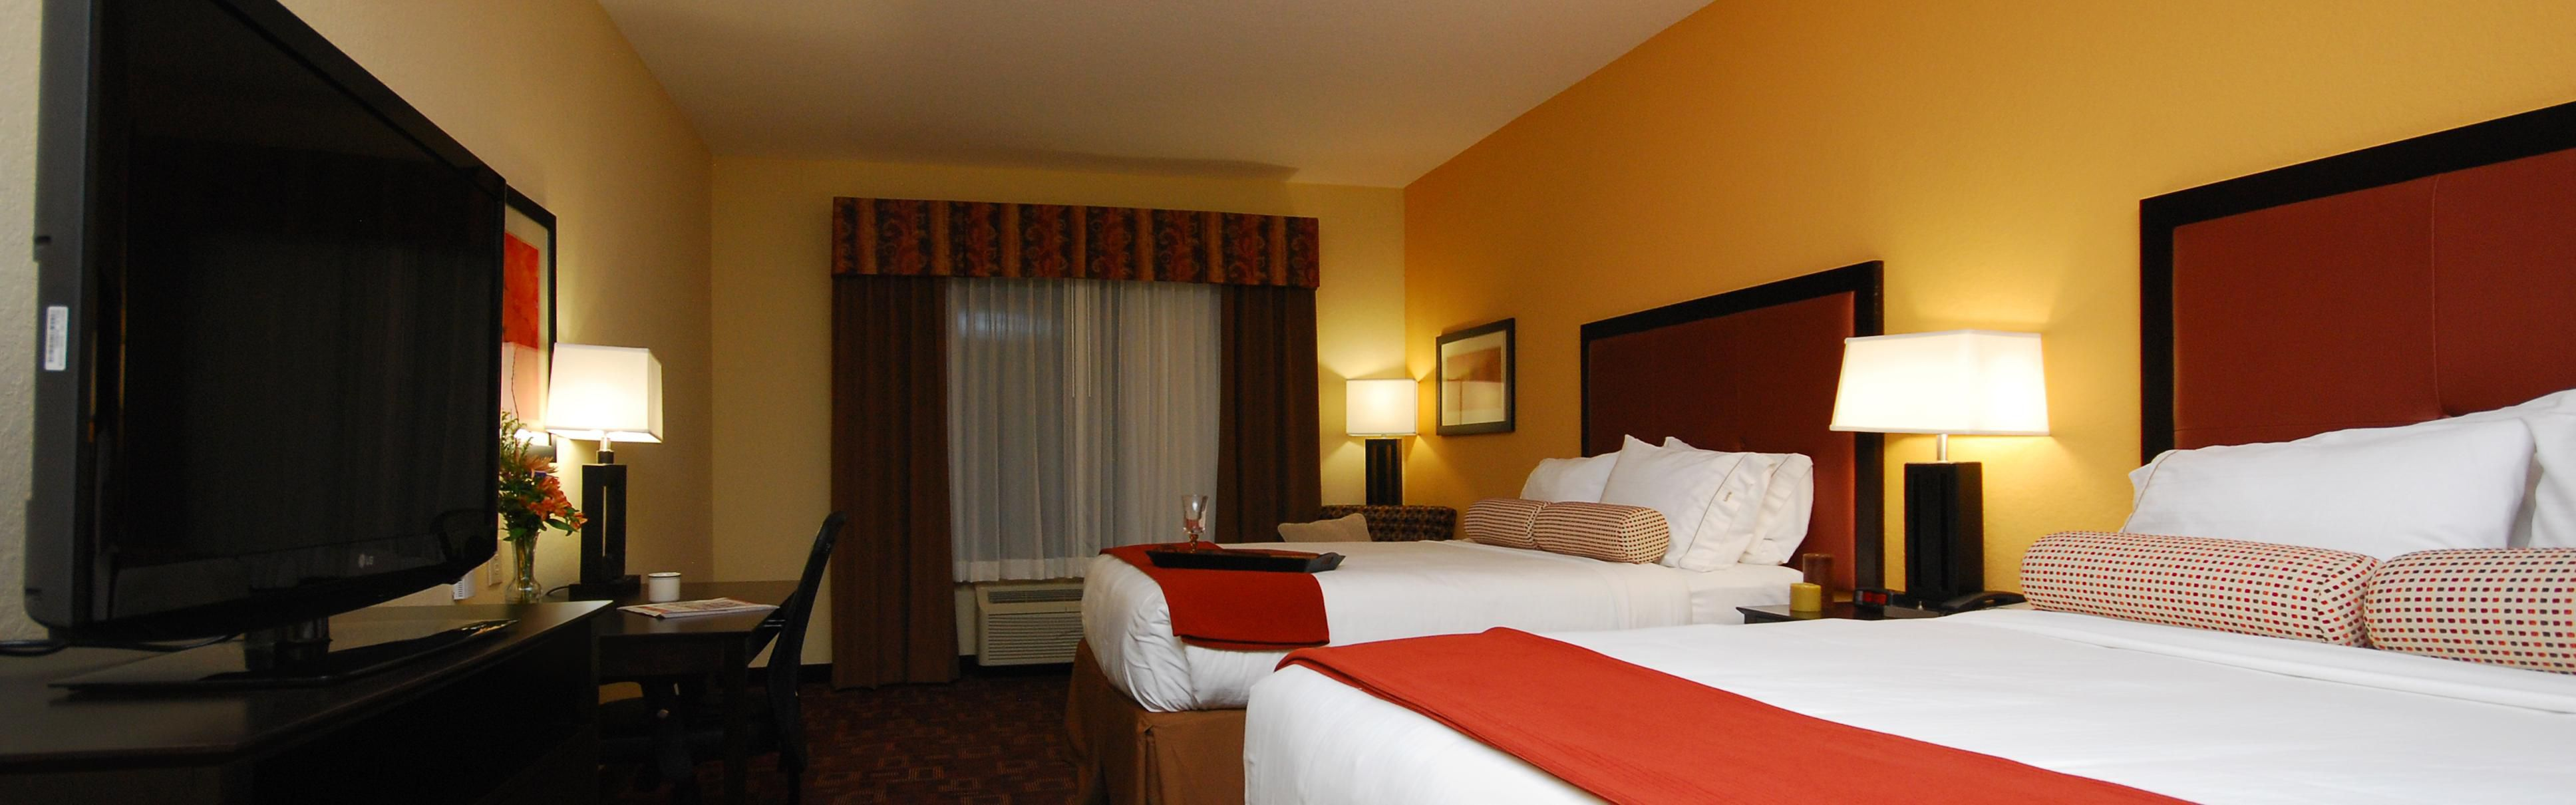 Holiday Inn Express & Suites Gonzales image 1